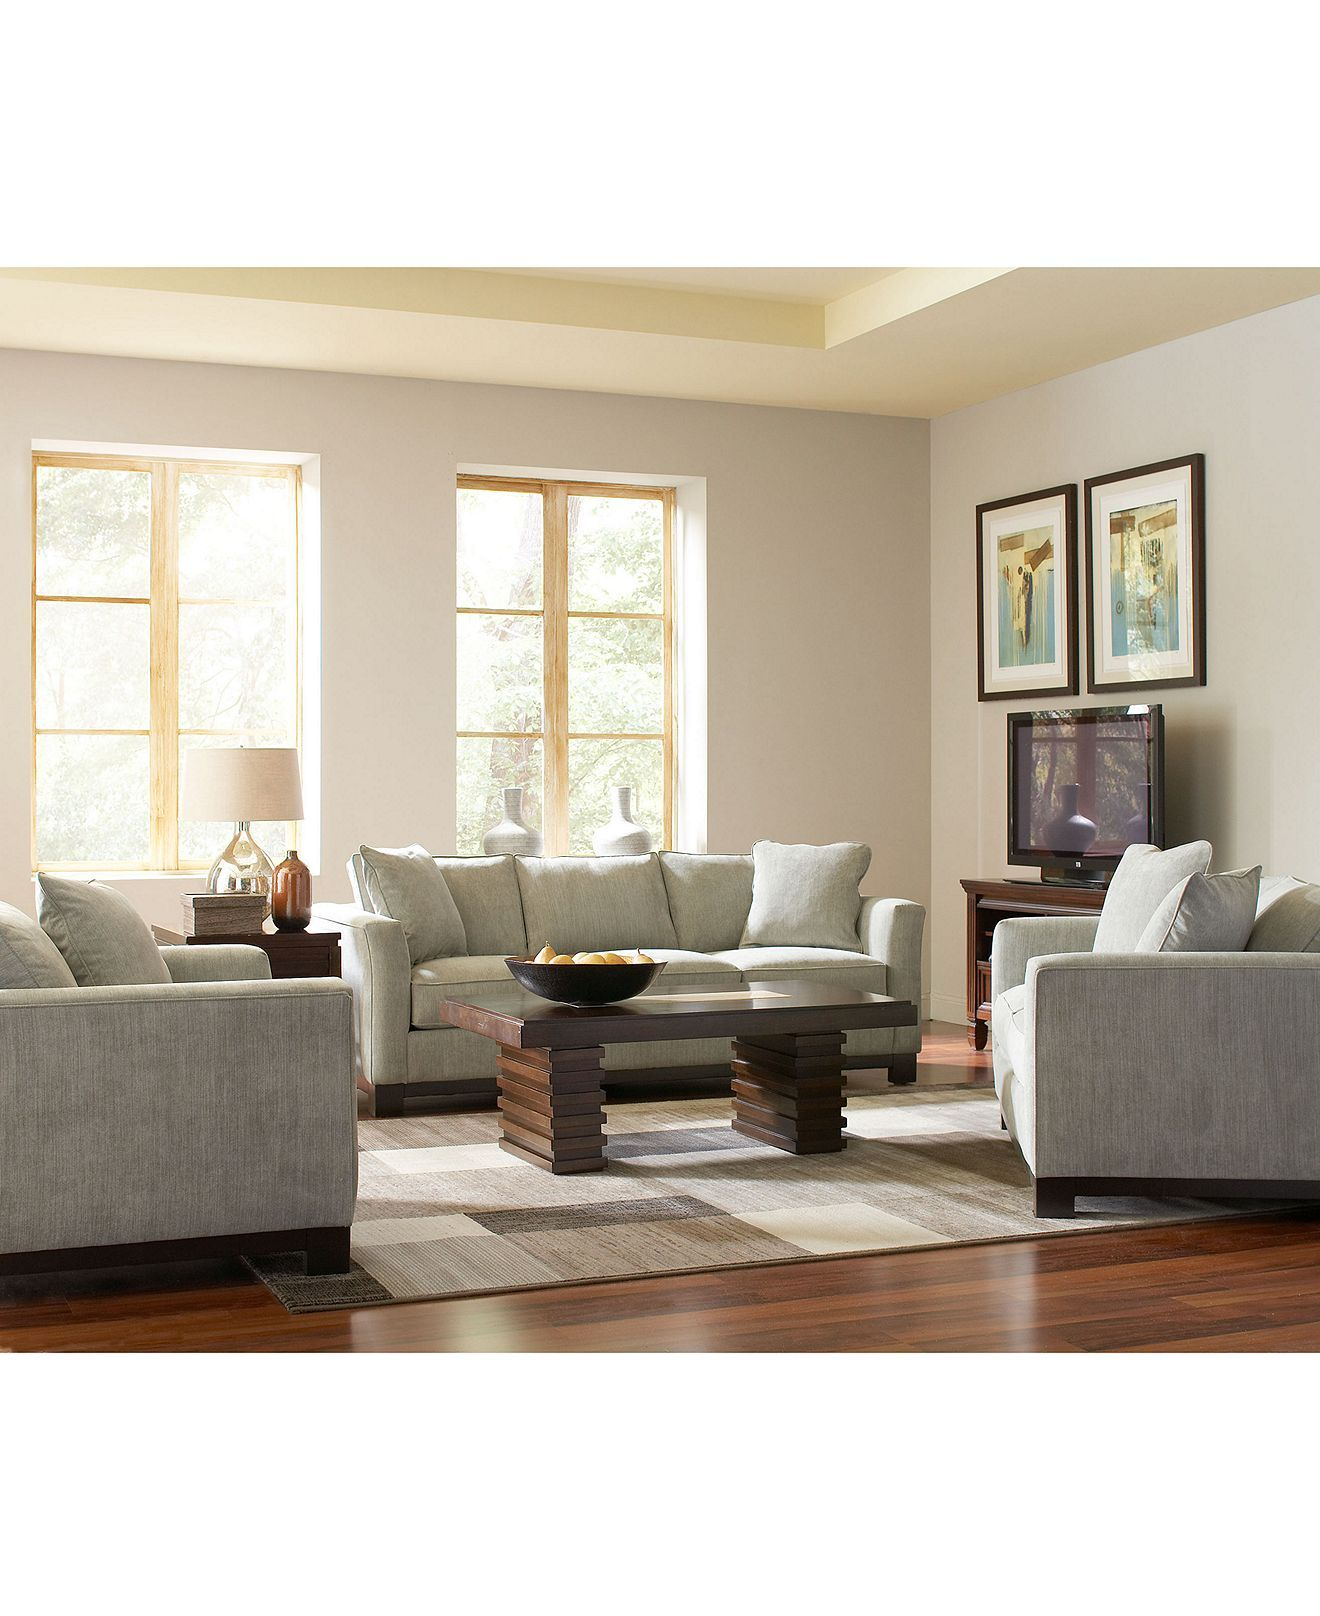 Kenton fabric sofa living room furniture collection furniture macys